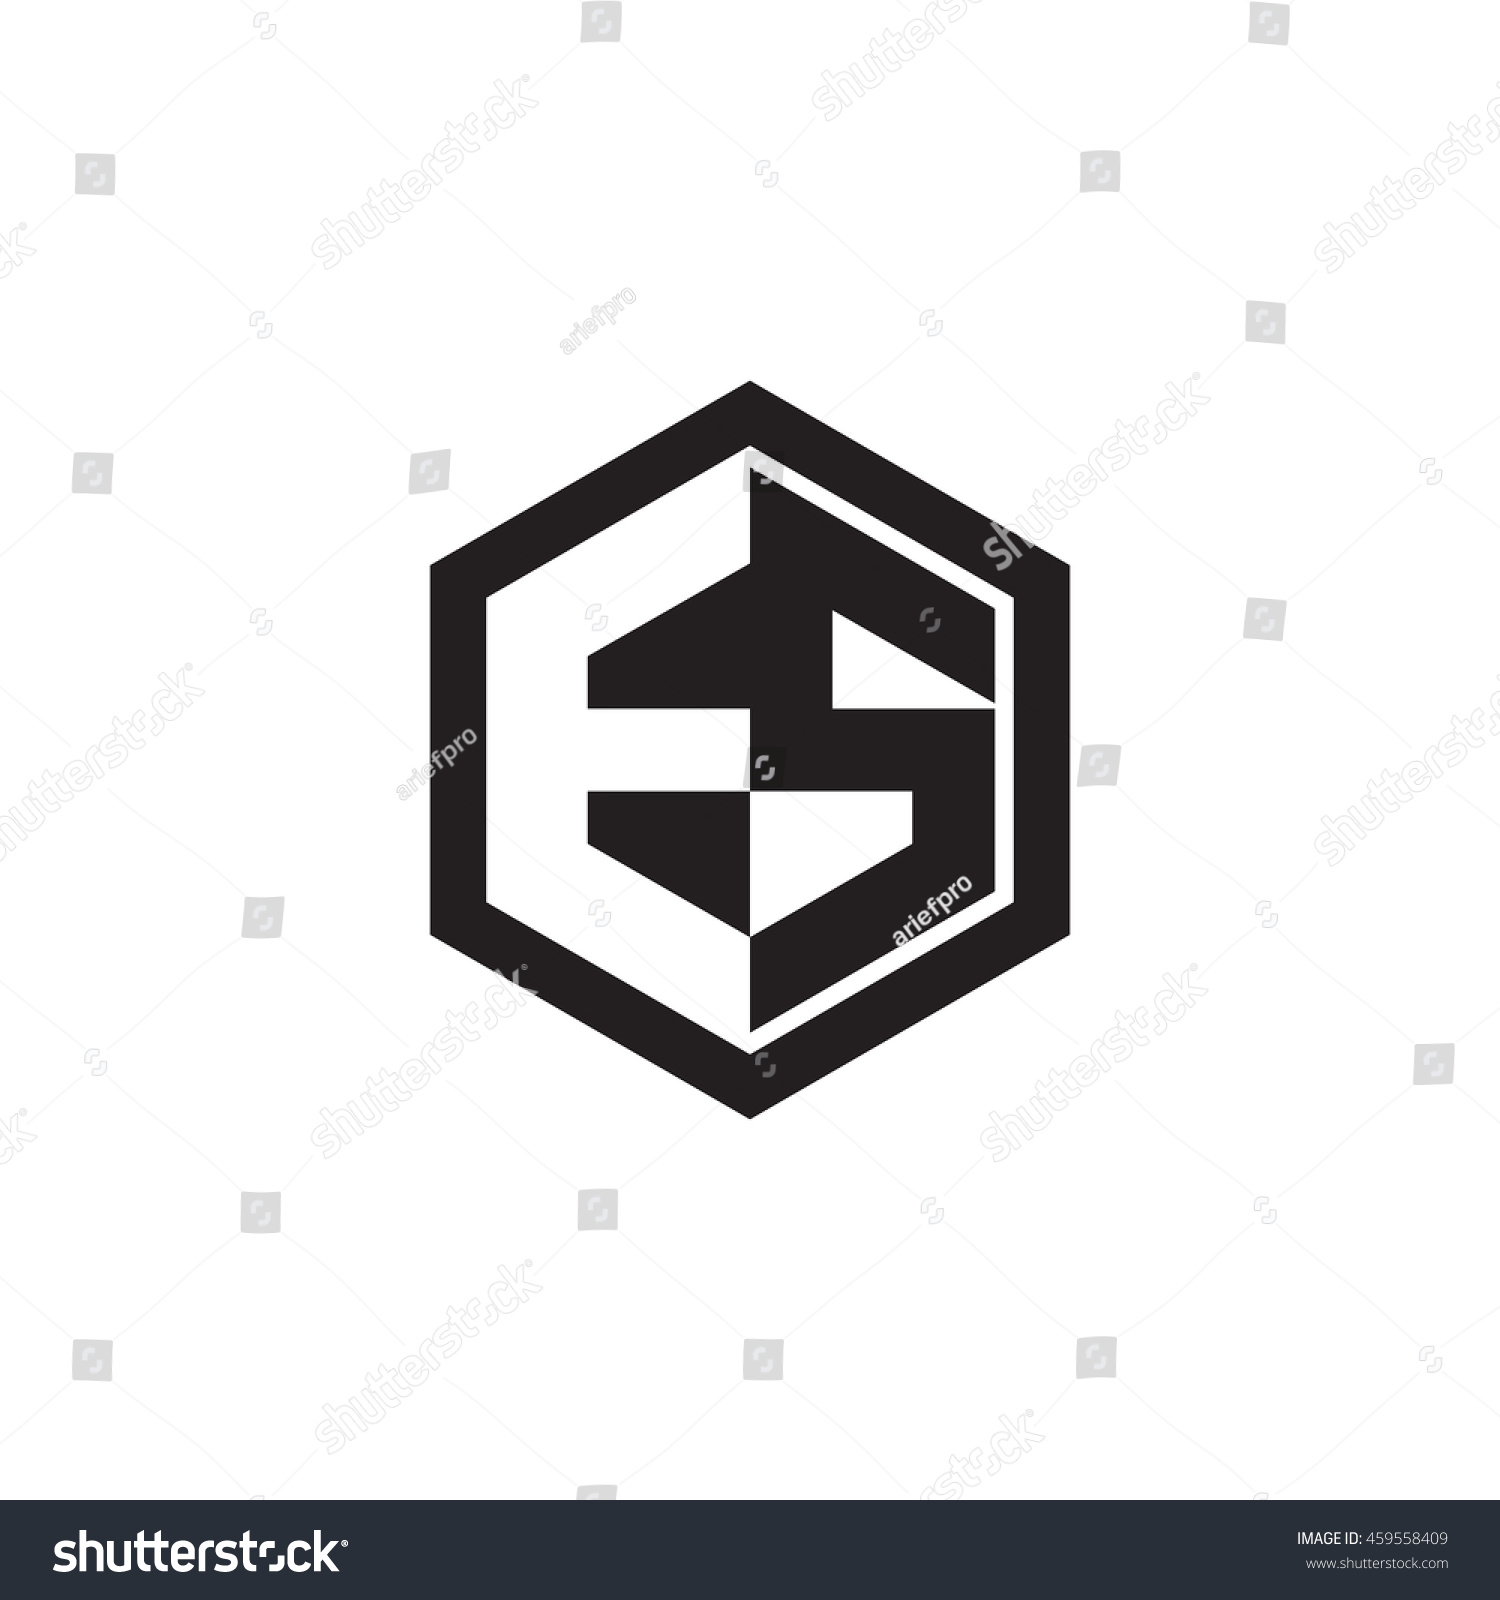 Initial Letters Es Negative Space Hexagon Stock Vector Royalty Free 459558409